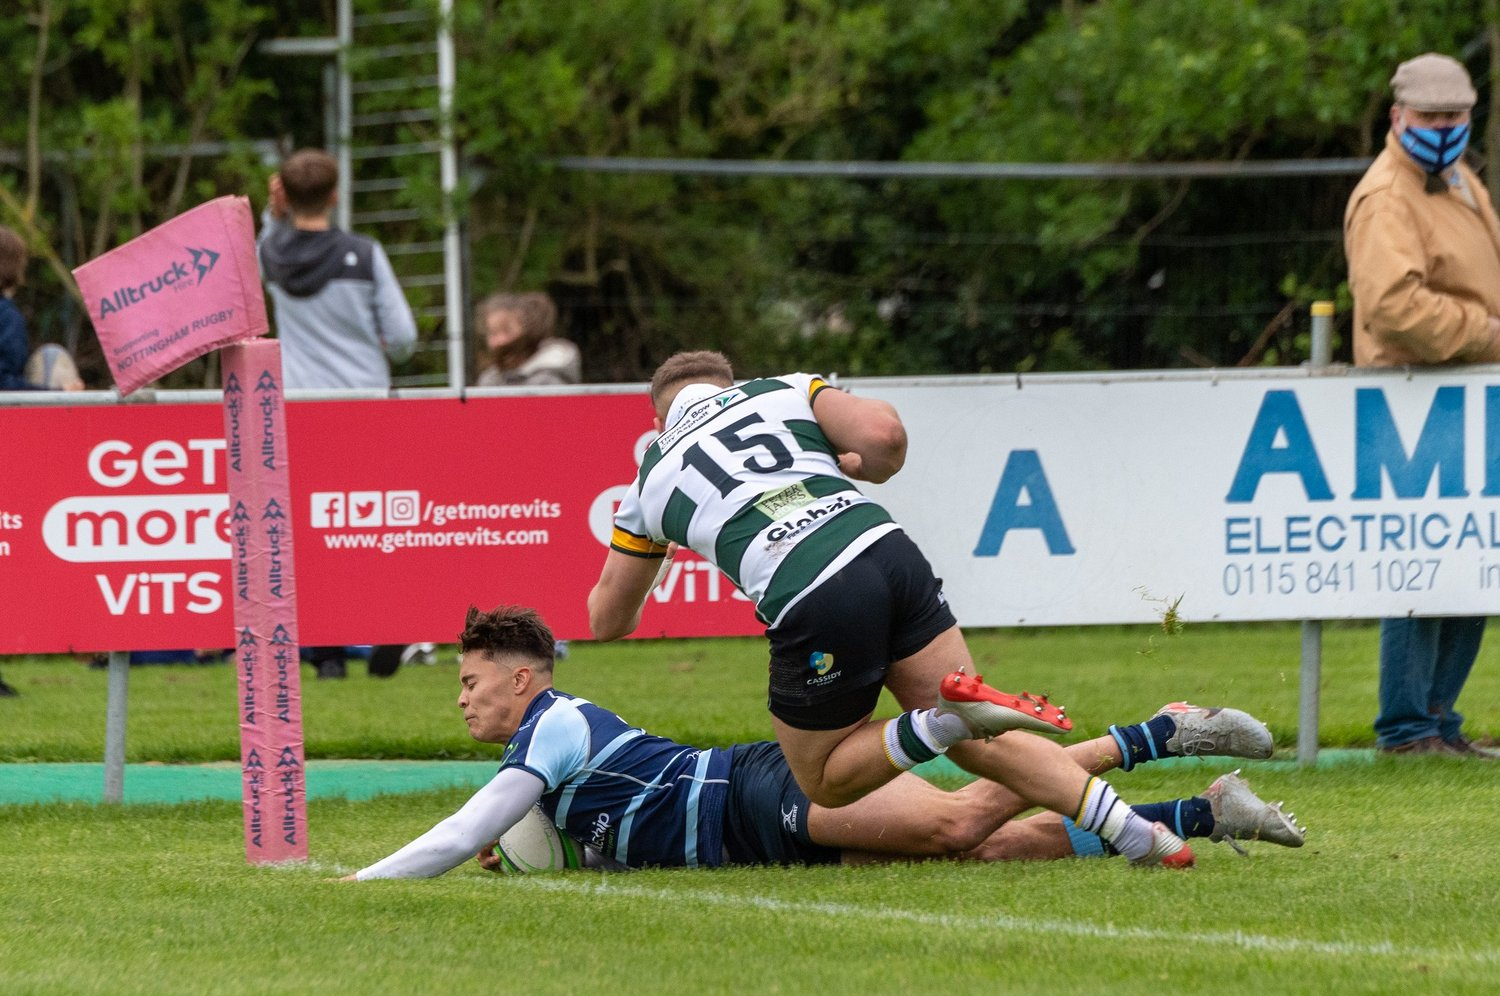 Saints' Josh Gillespie scores a try for Bedford